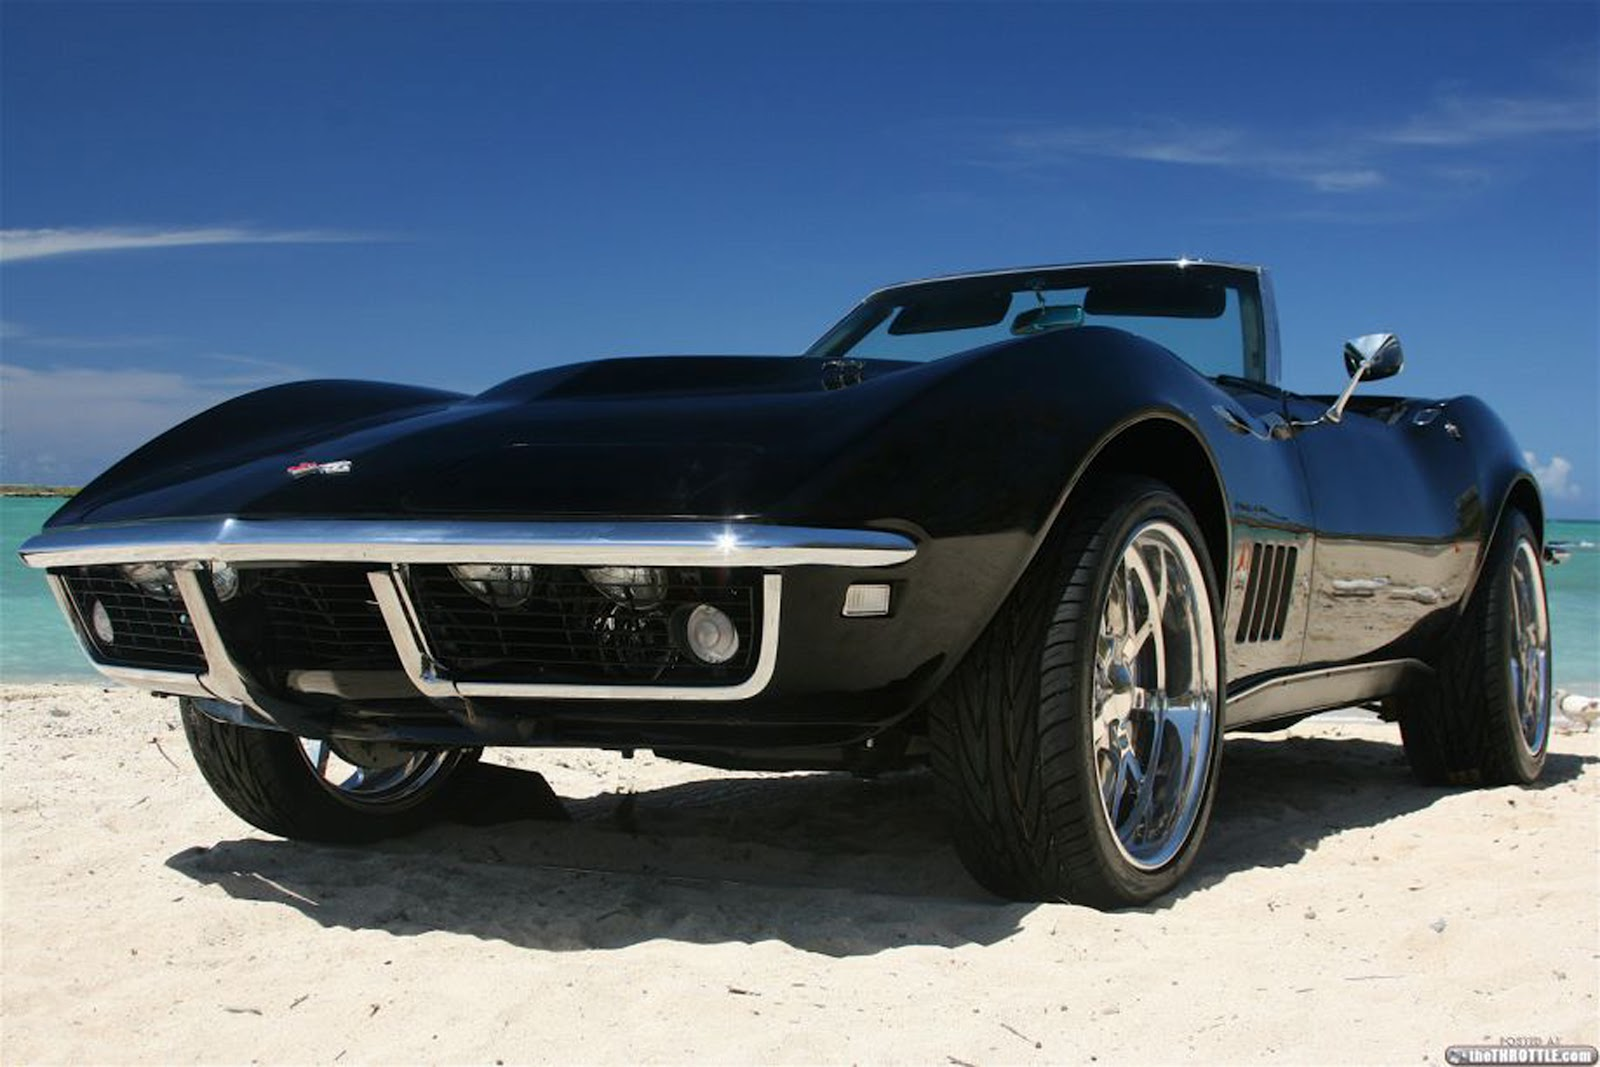 Chidi Okonkwo\u002639;s Blog  MUSCLE CARS \/ CLASSICS, CONCEPTS CARS \u0026 HORSEPOWER  March 06, 2012 15:16